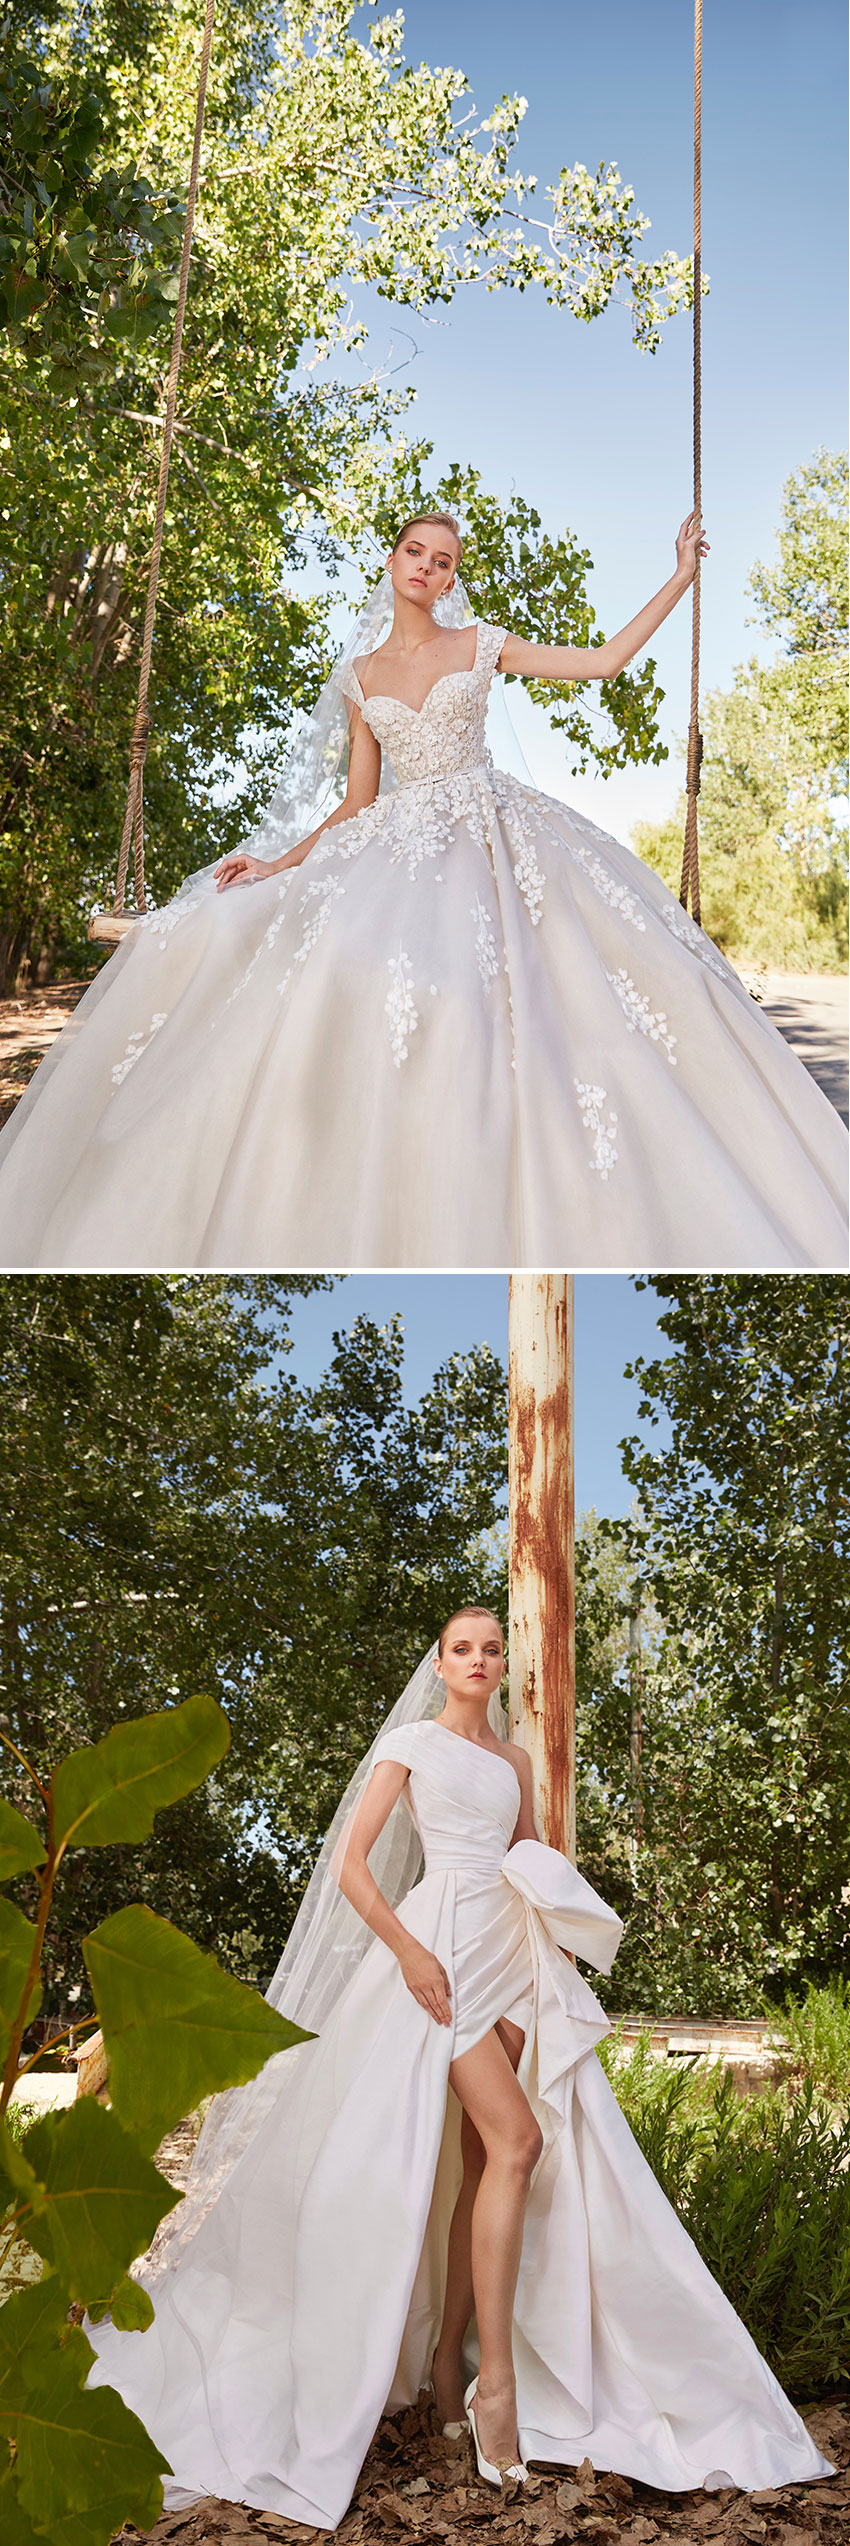 Elie Saab's Spring 2021 bridal collection features wedding dresses with oversized bows and asymmetrical necklines featured in Perfect Wedding Magazine